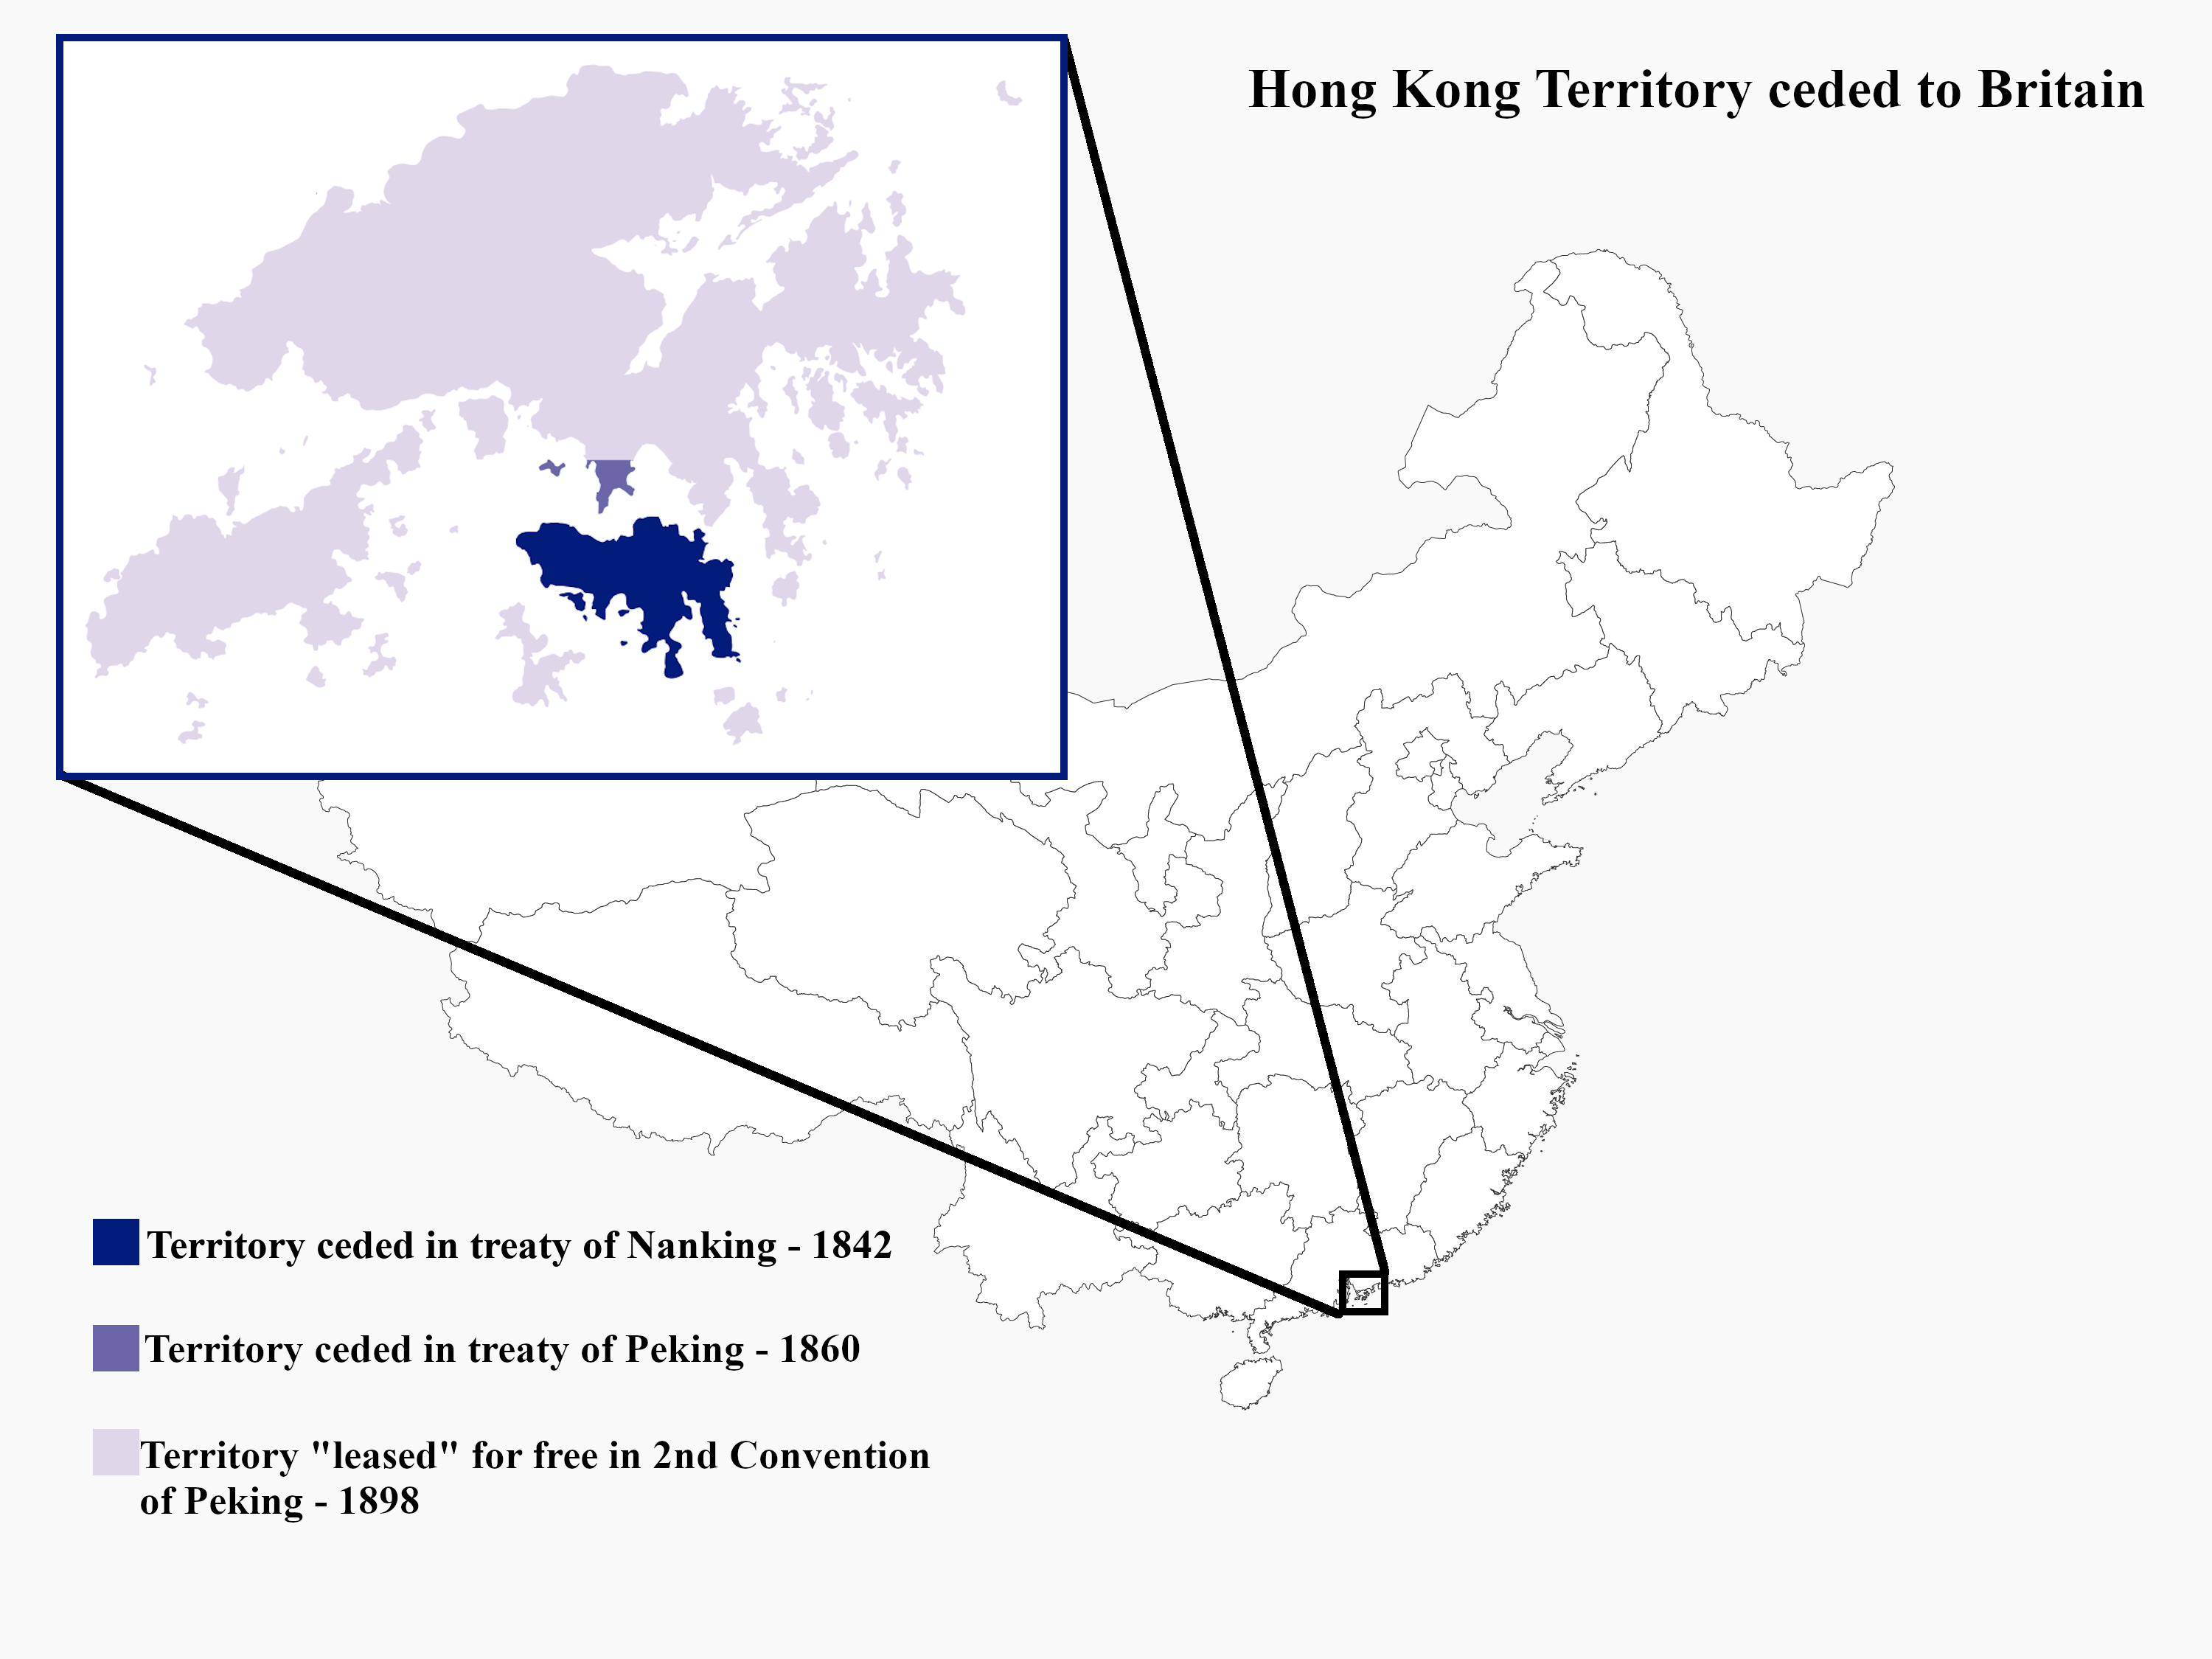 Location of Hong Kong and ceded territory